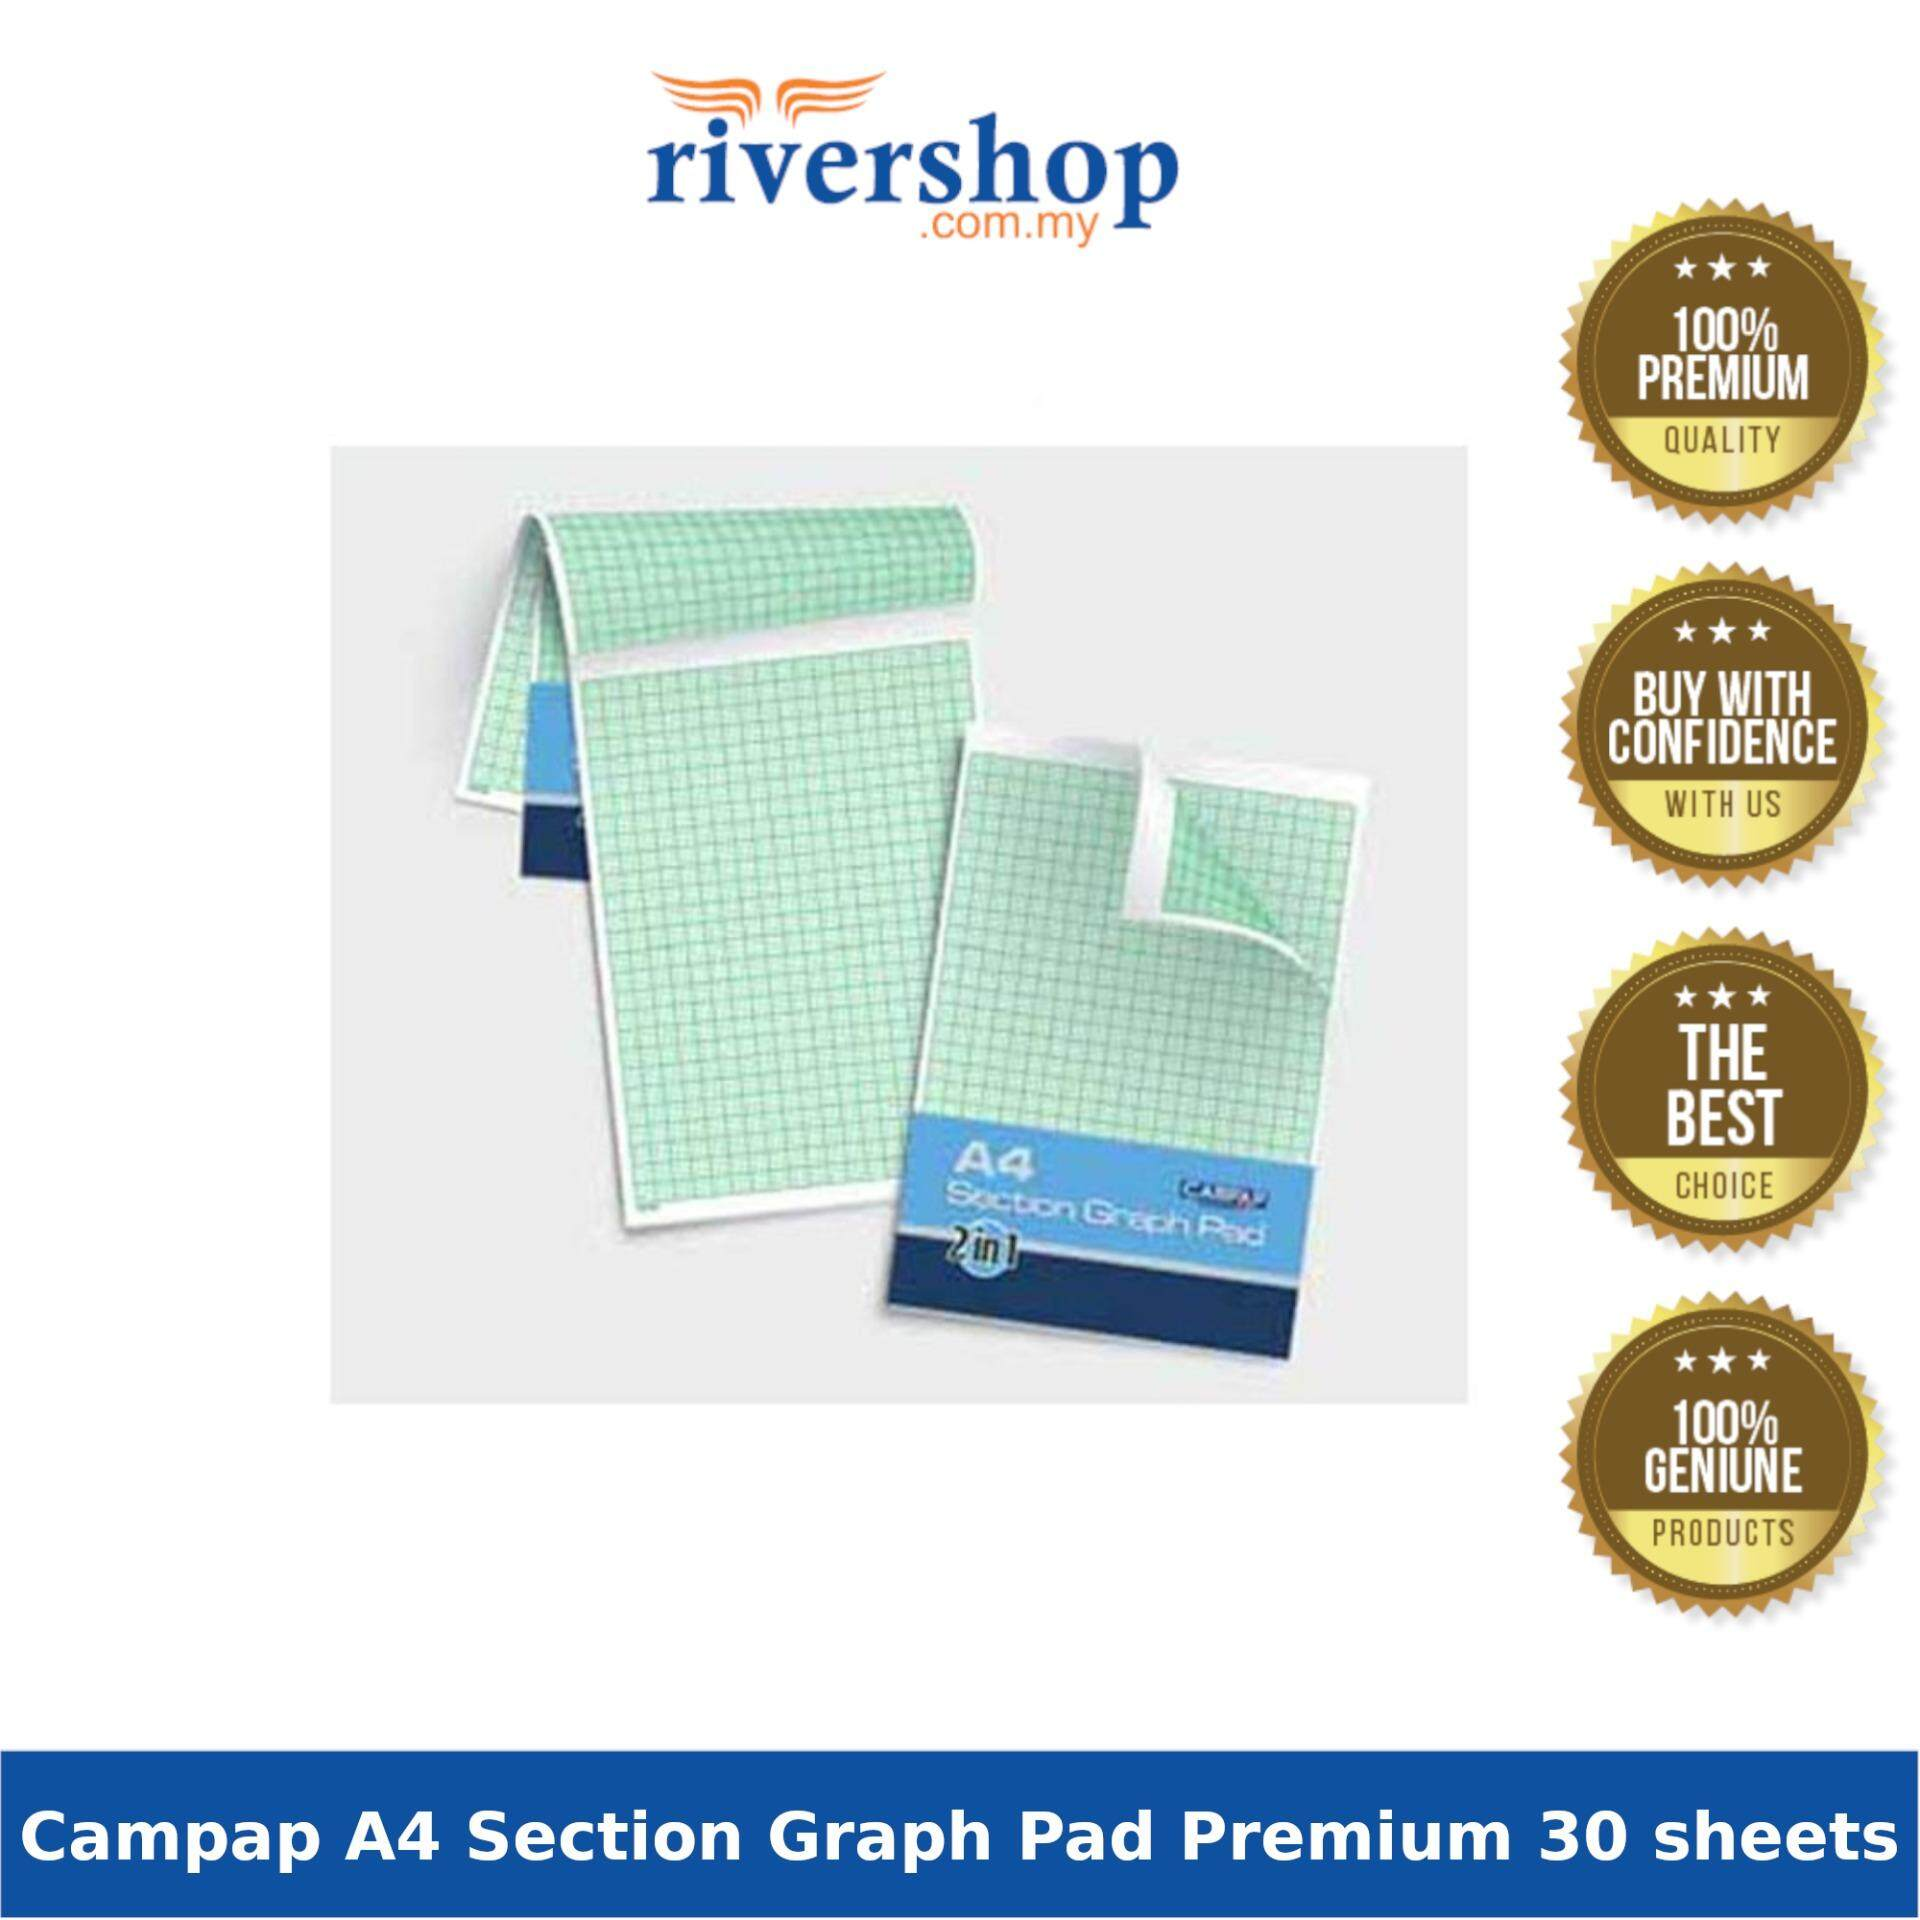 Campap CA3424 A4 Section Graph Pad Premium 1mm & 2mm ( 2 in 1 ) 30 sheets